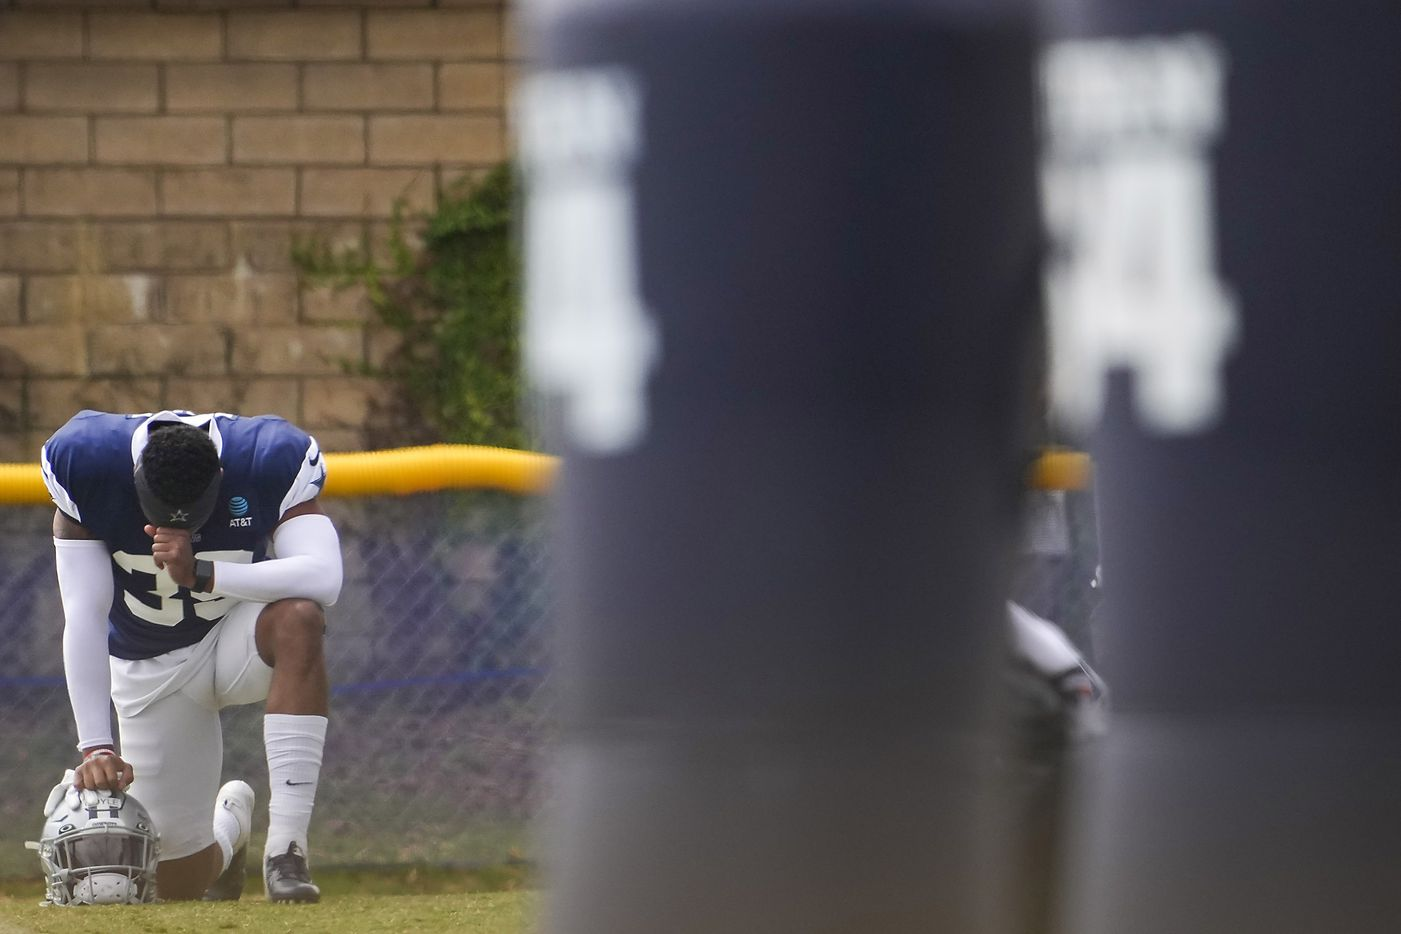 Dallas Cowboys safety Tyler Coyle takes a knee before a practice at training camp on Wednesday, July 28, 2021, in Oxnard, Calif.